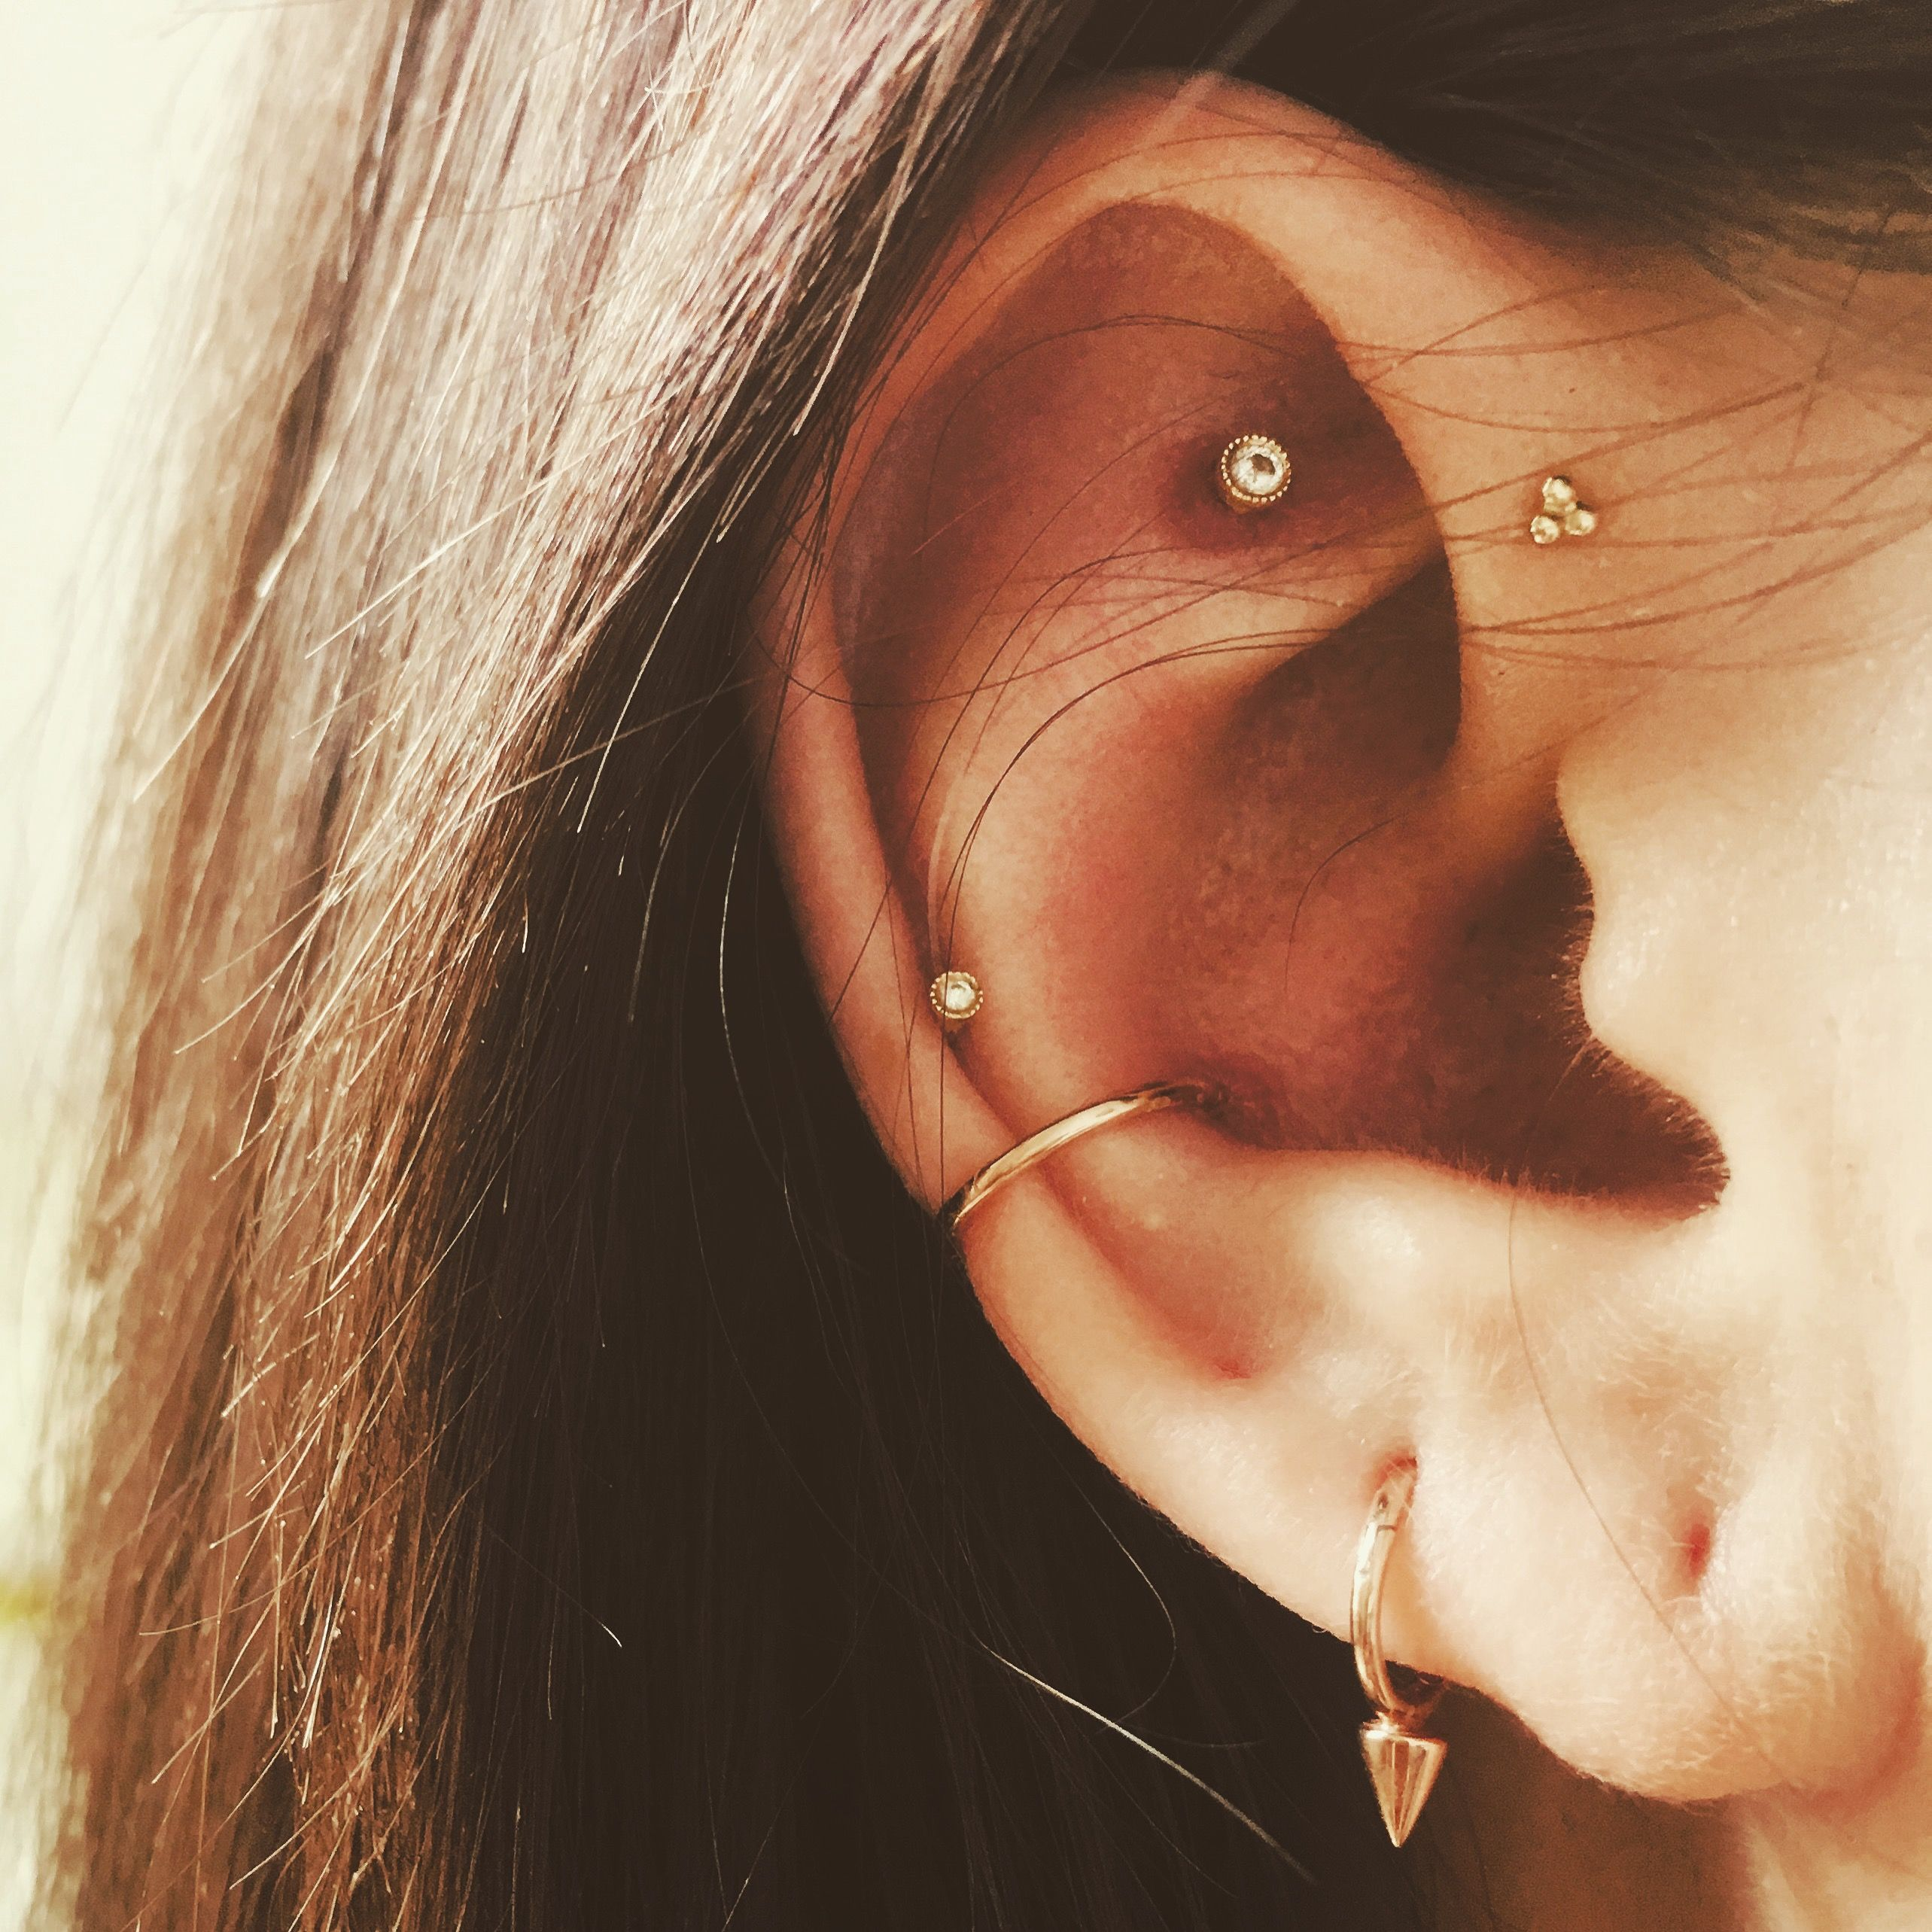 Pin by Debora Gordon on Cool Stuff in 2019 | Piercings ...